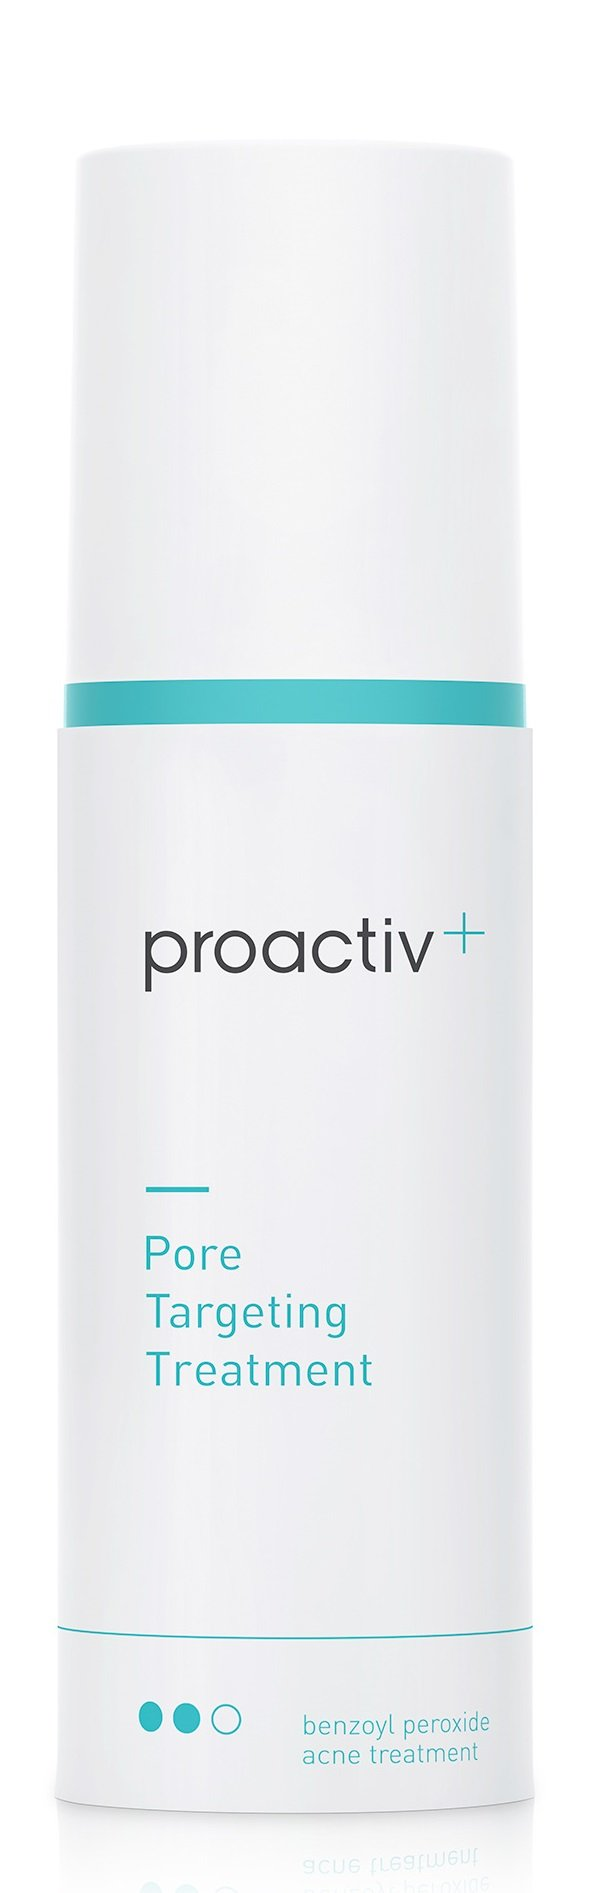 Proactiv+ Pore Targeting Treatment, 3 Ounce (90 Day)